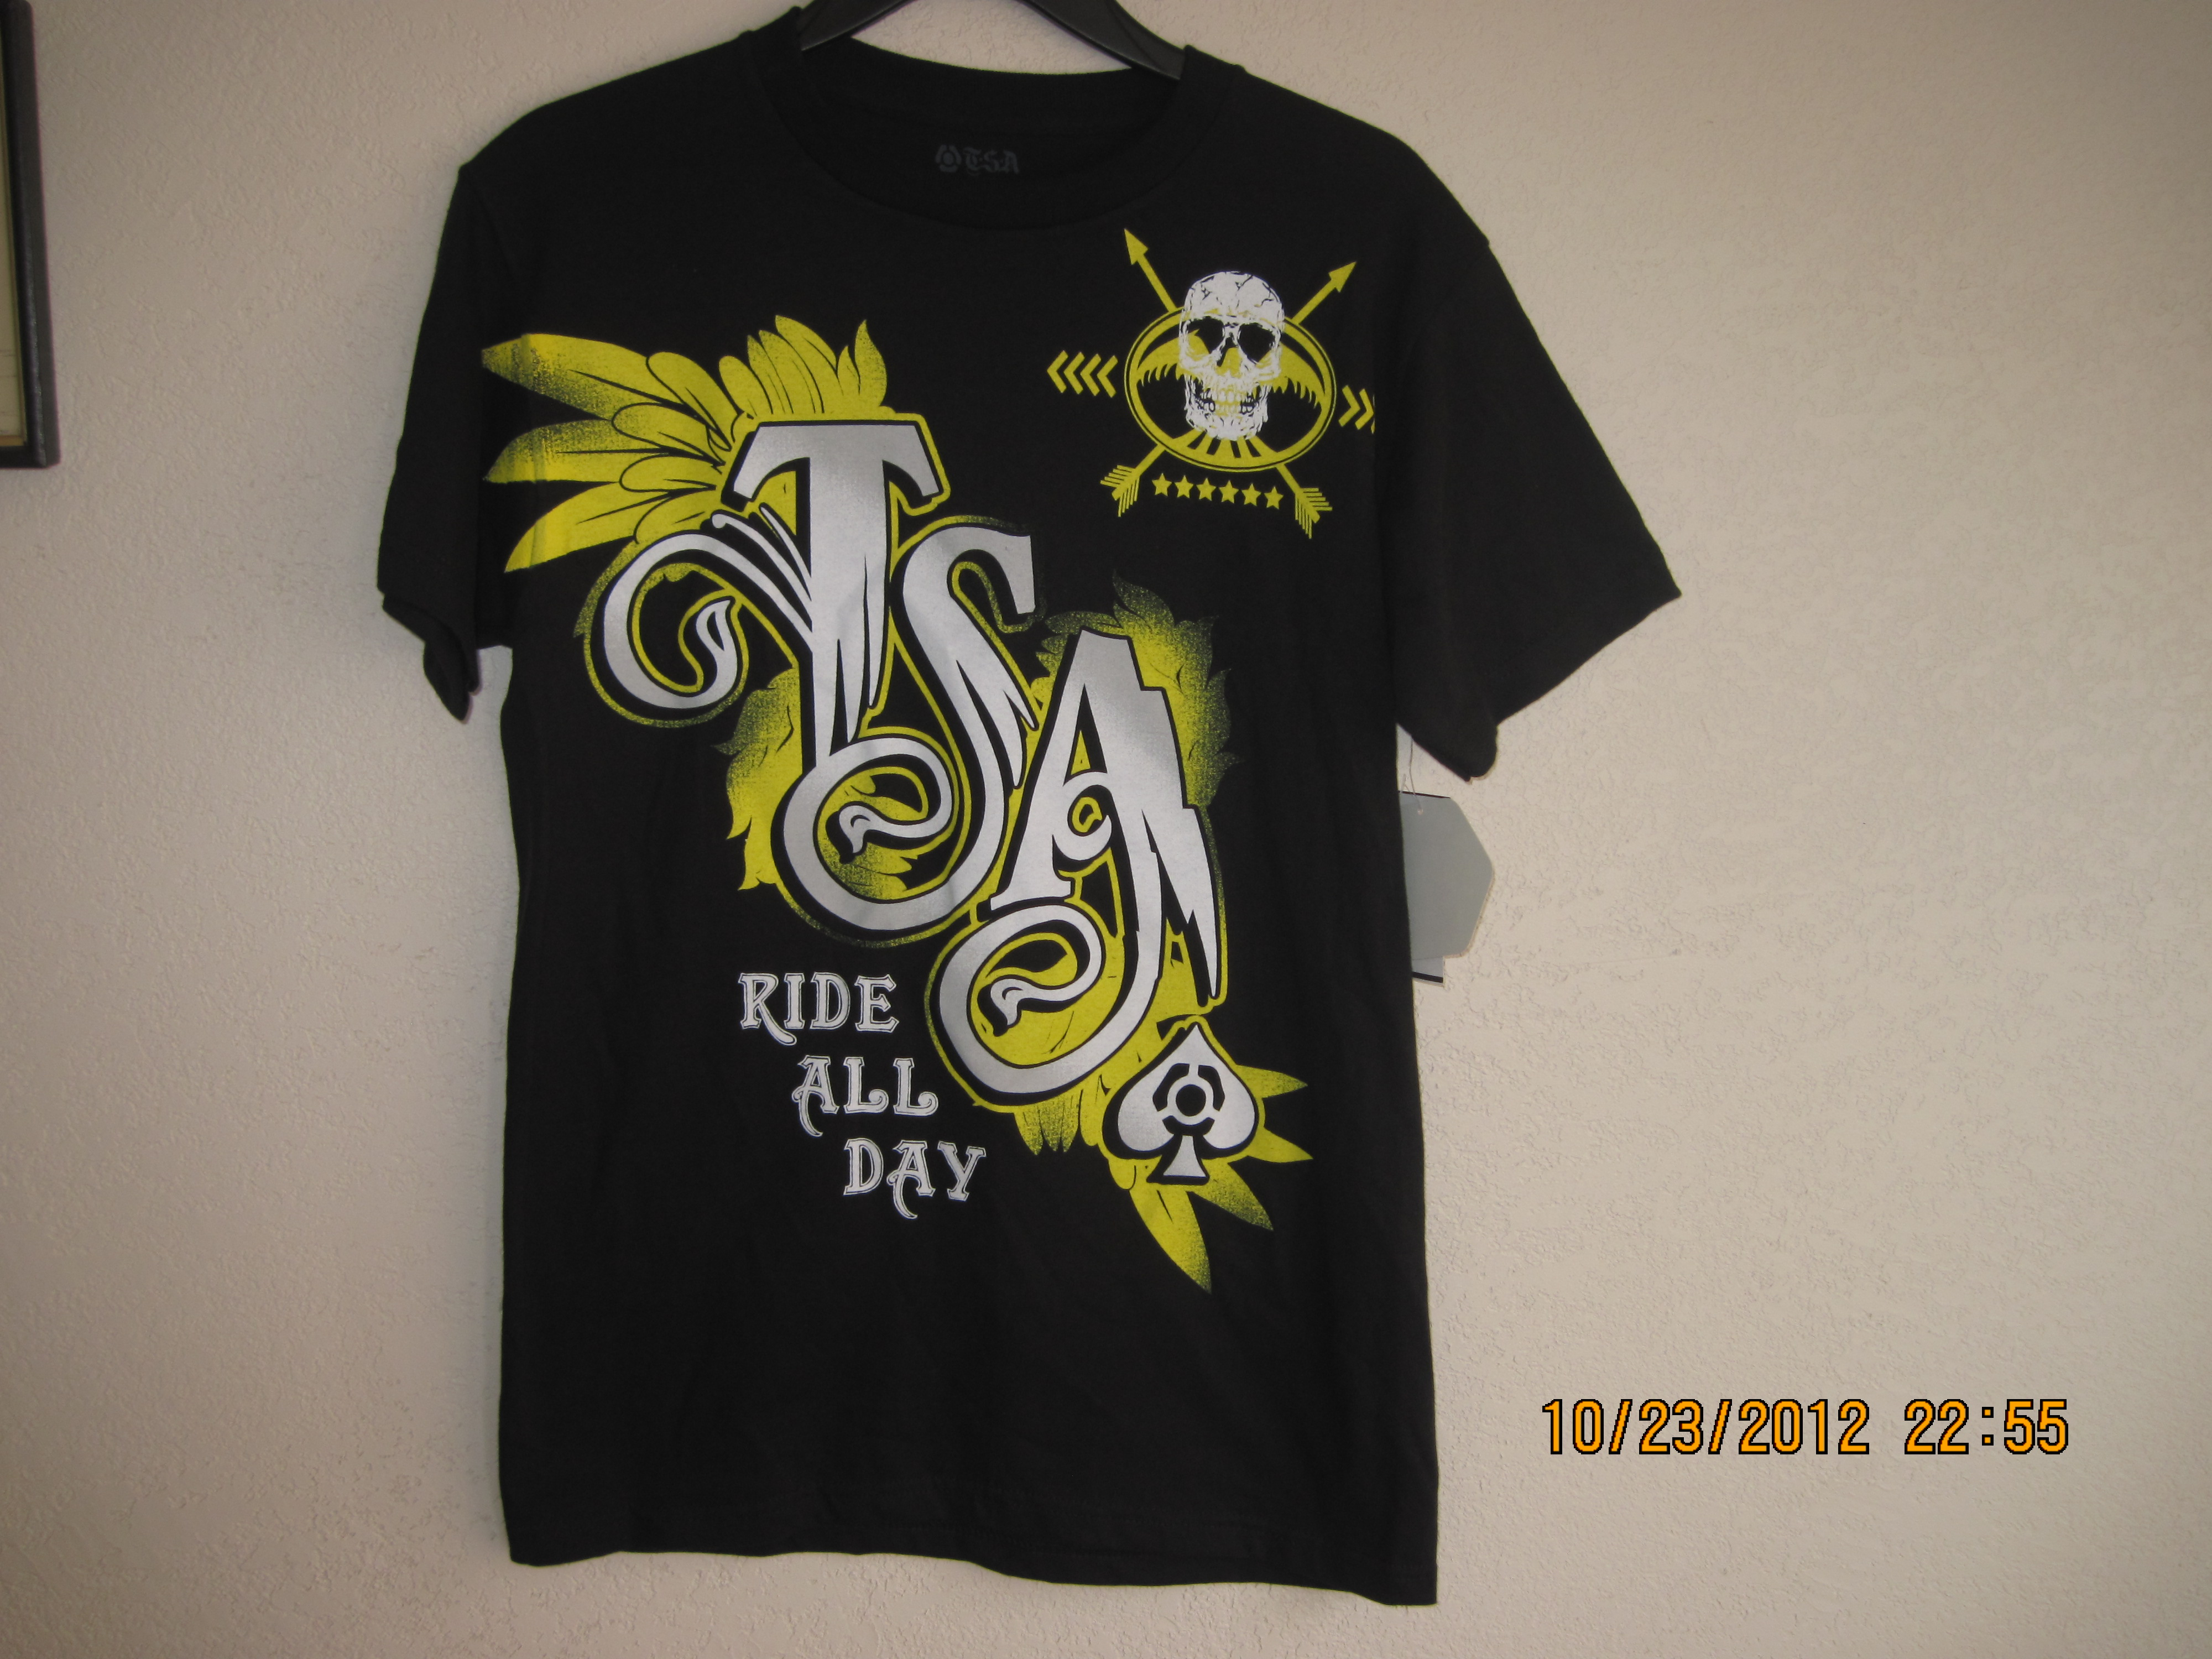 T.S.A MX Sz m T-Shirt with Ride All Day,Skull,T.S.A